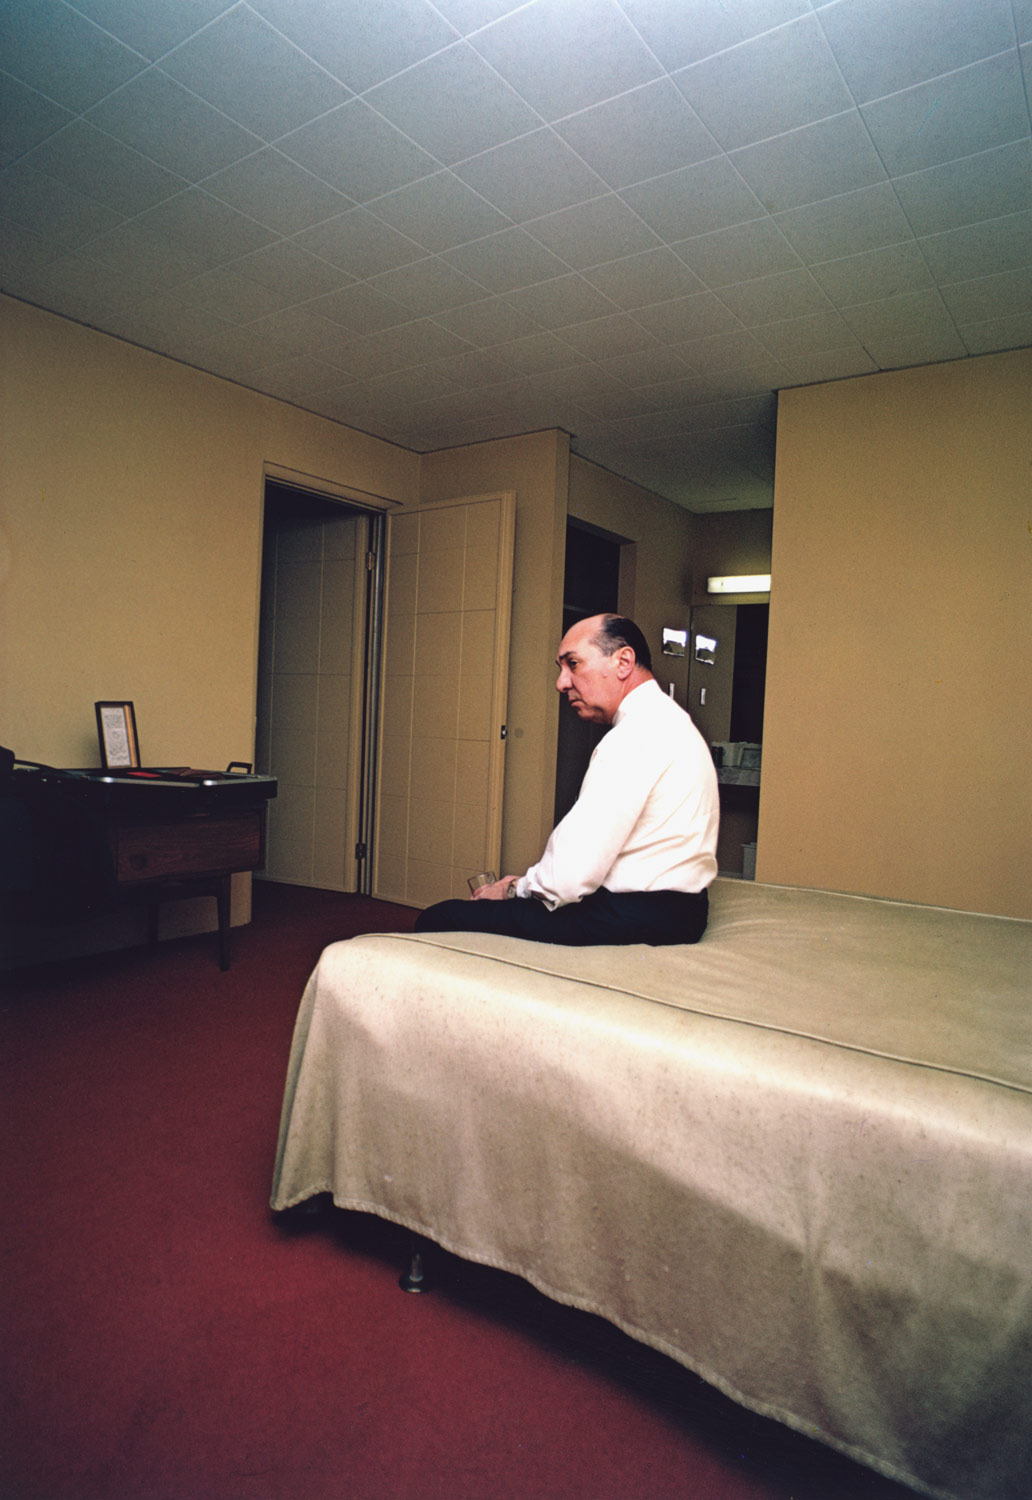 william eggleston images. William Eggleston (American